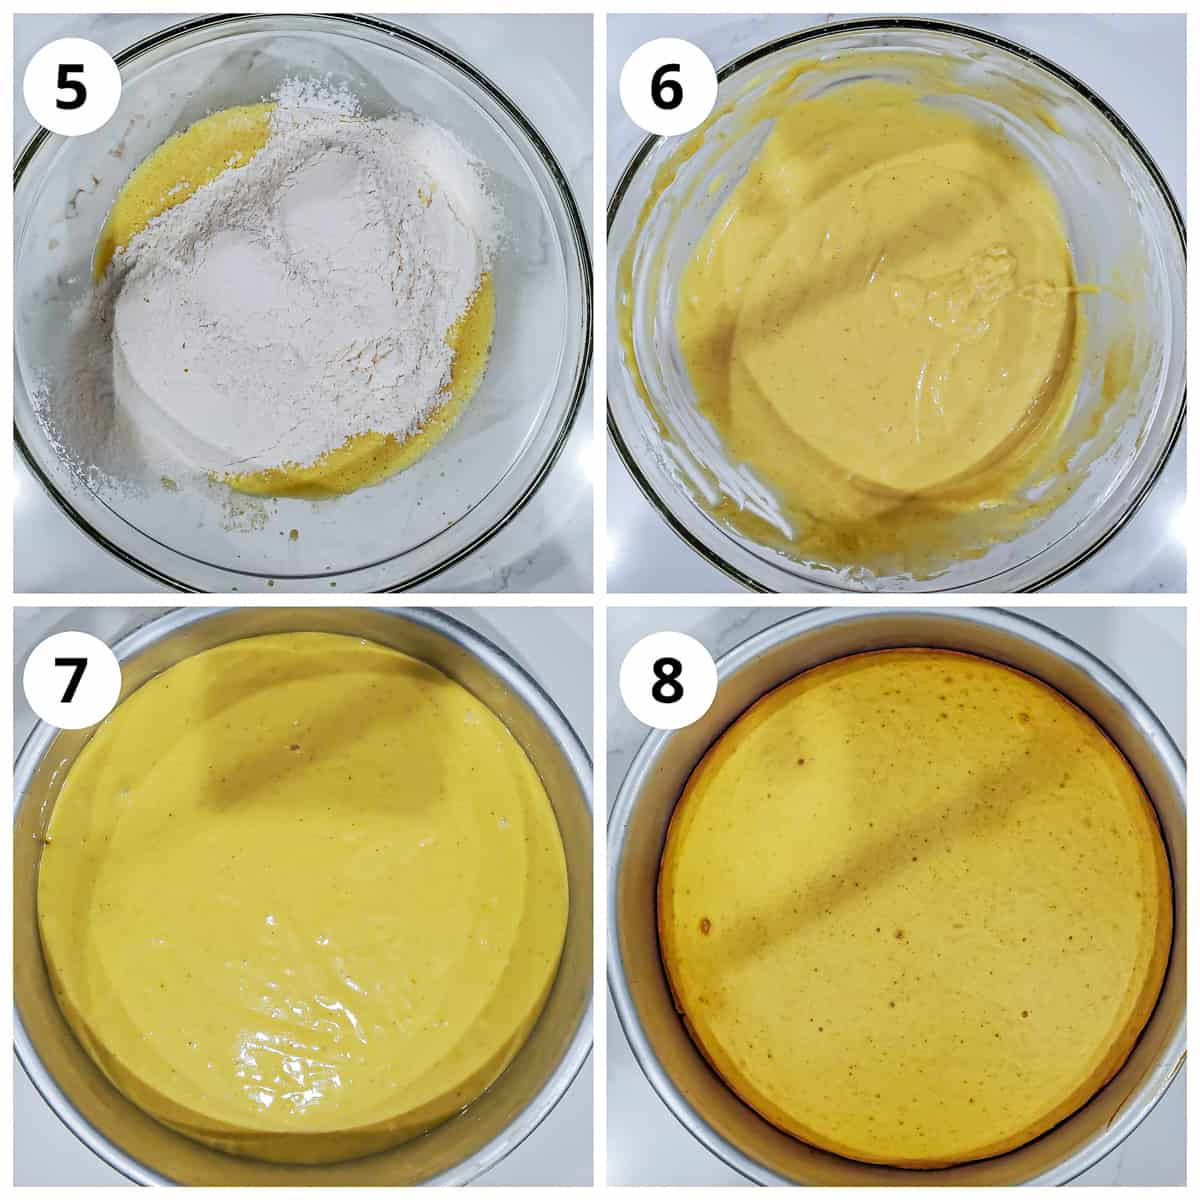 Steps to make cake batter and baking the cake